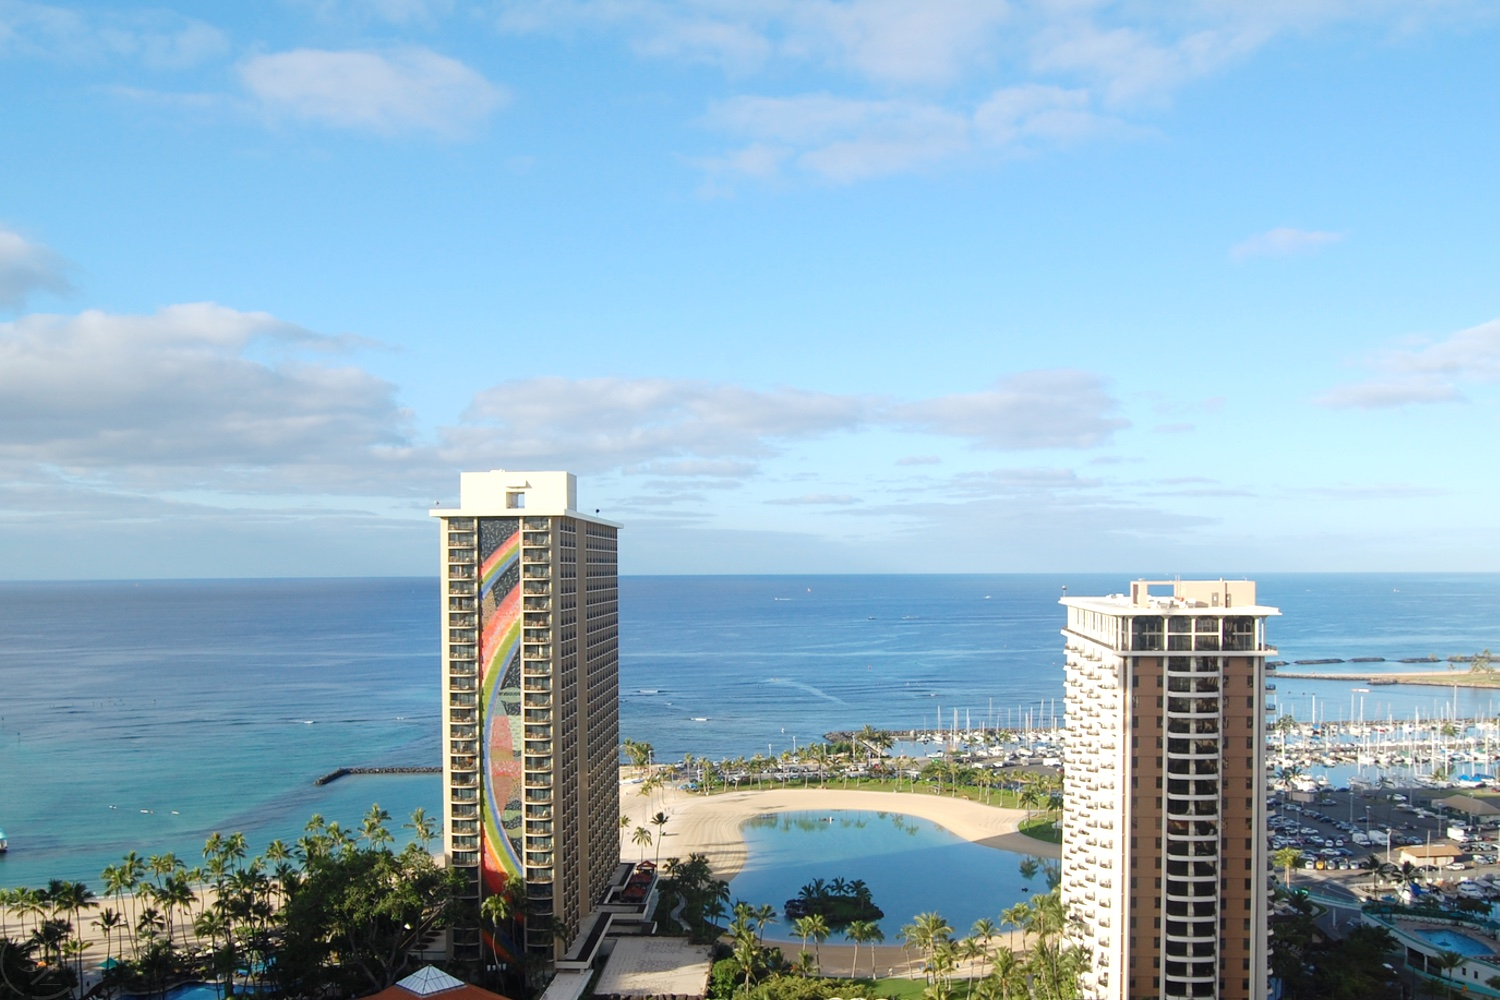 5 Things to Do in Hawaii - Where to Stay and Shop!